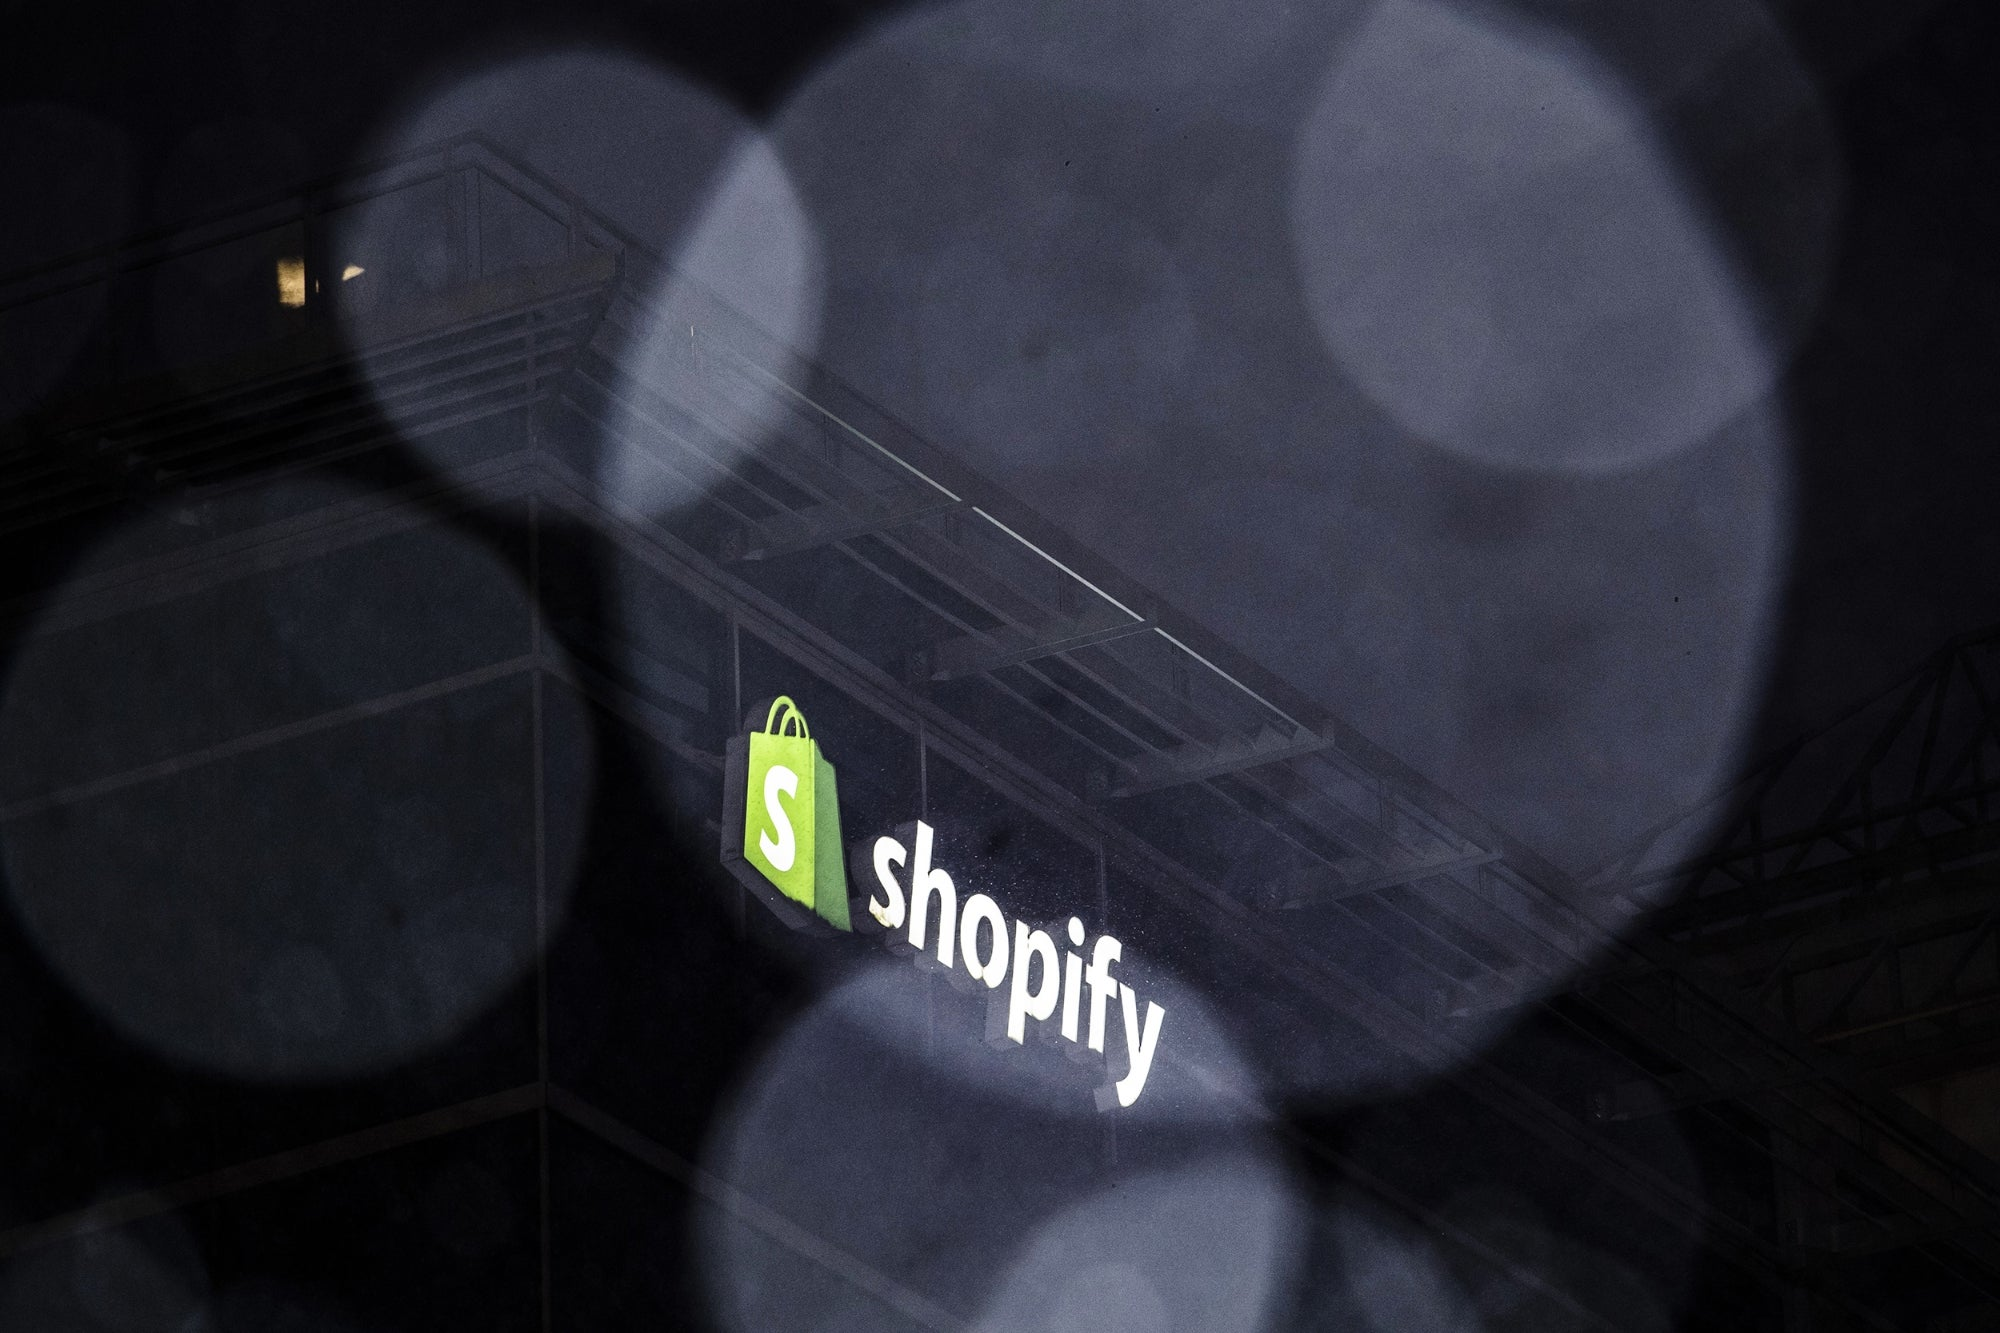 Shopify Doubled In Size in 2020. Can It Maintain the Momentum in 2021?